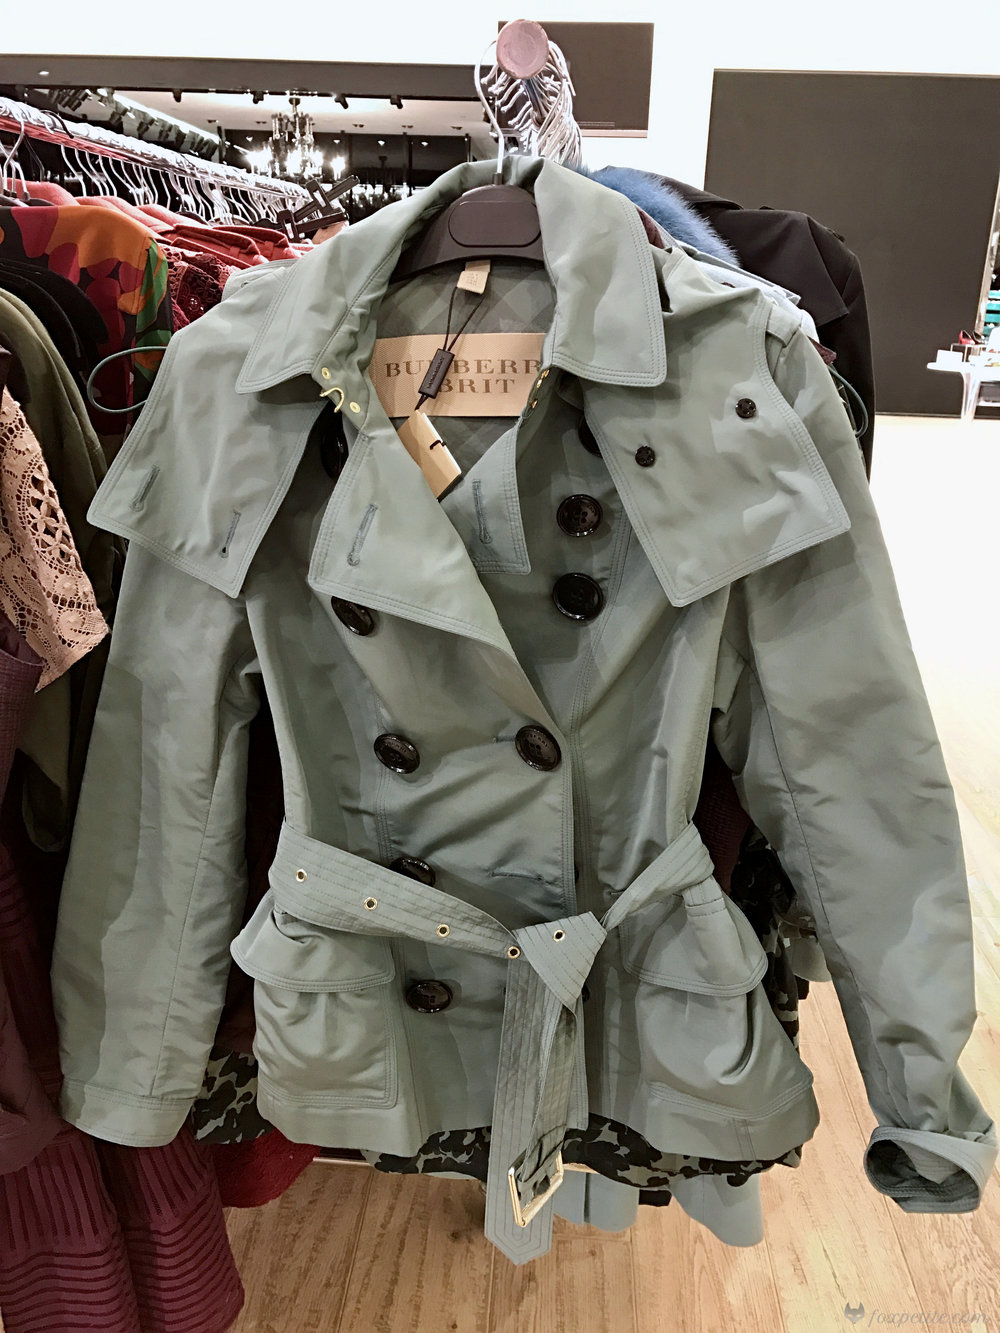 Burberry Risebrooke Showerproof Taffeta Trench Jacket in eucalyptus green, USA size 2 (  here  )